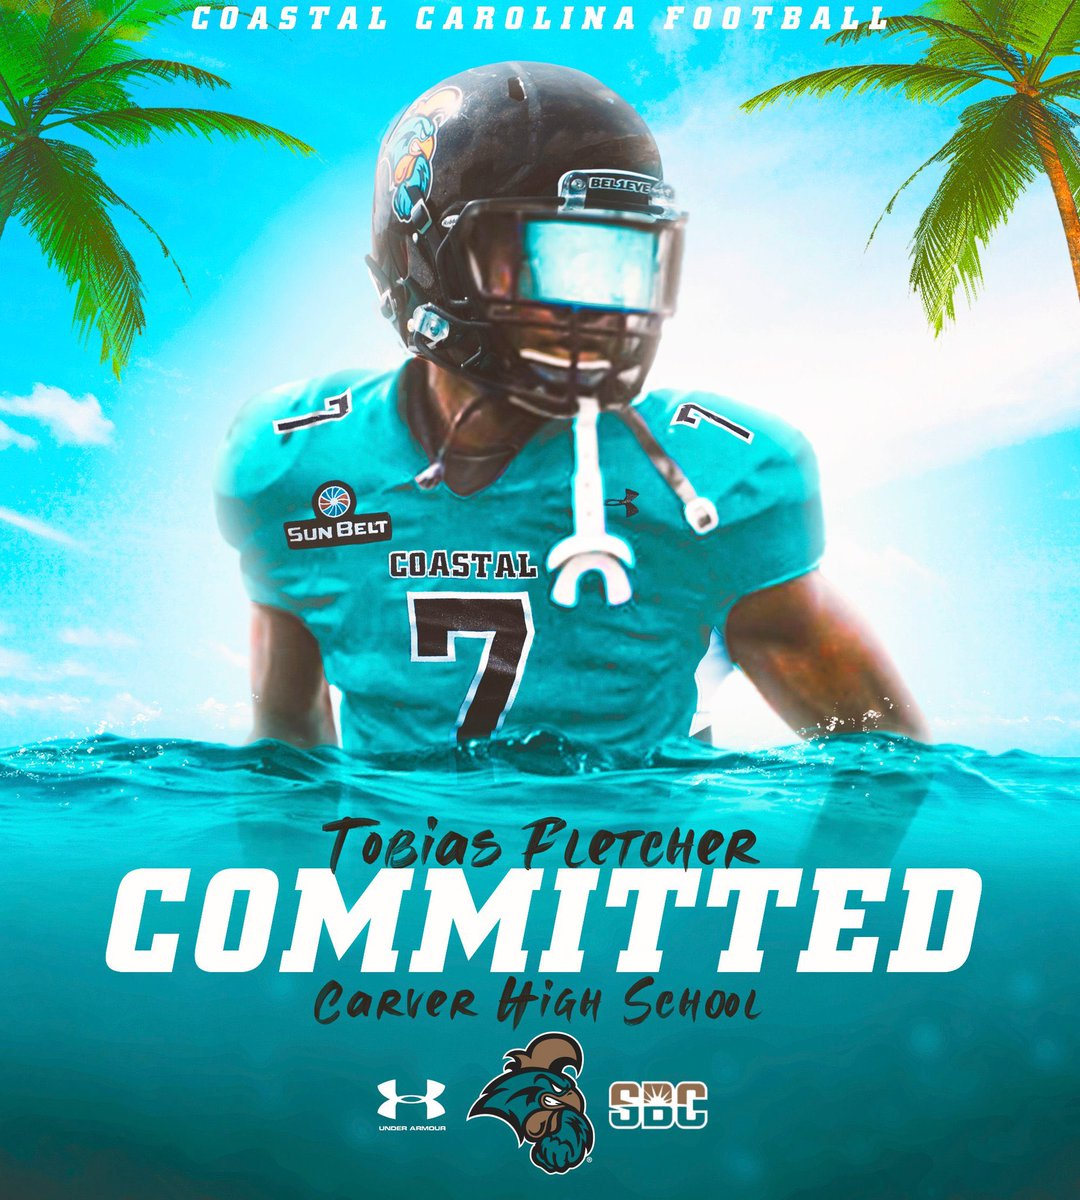 Commited.... #Chantsup 👌🏾